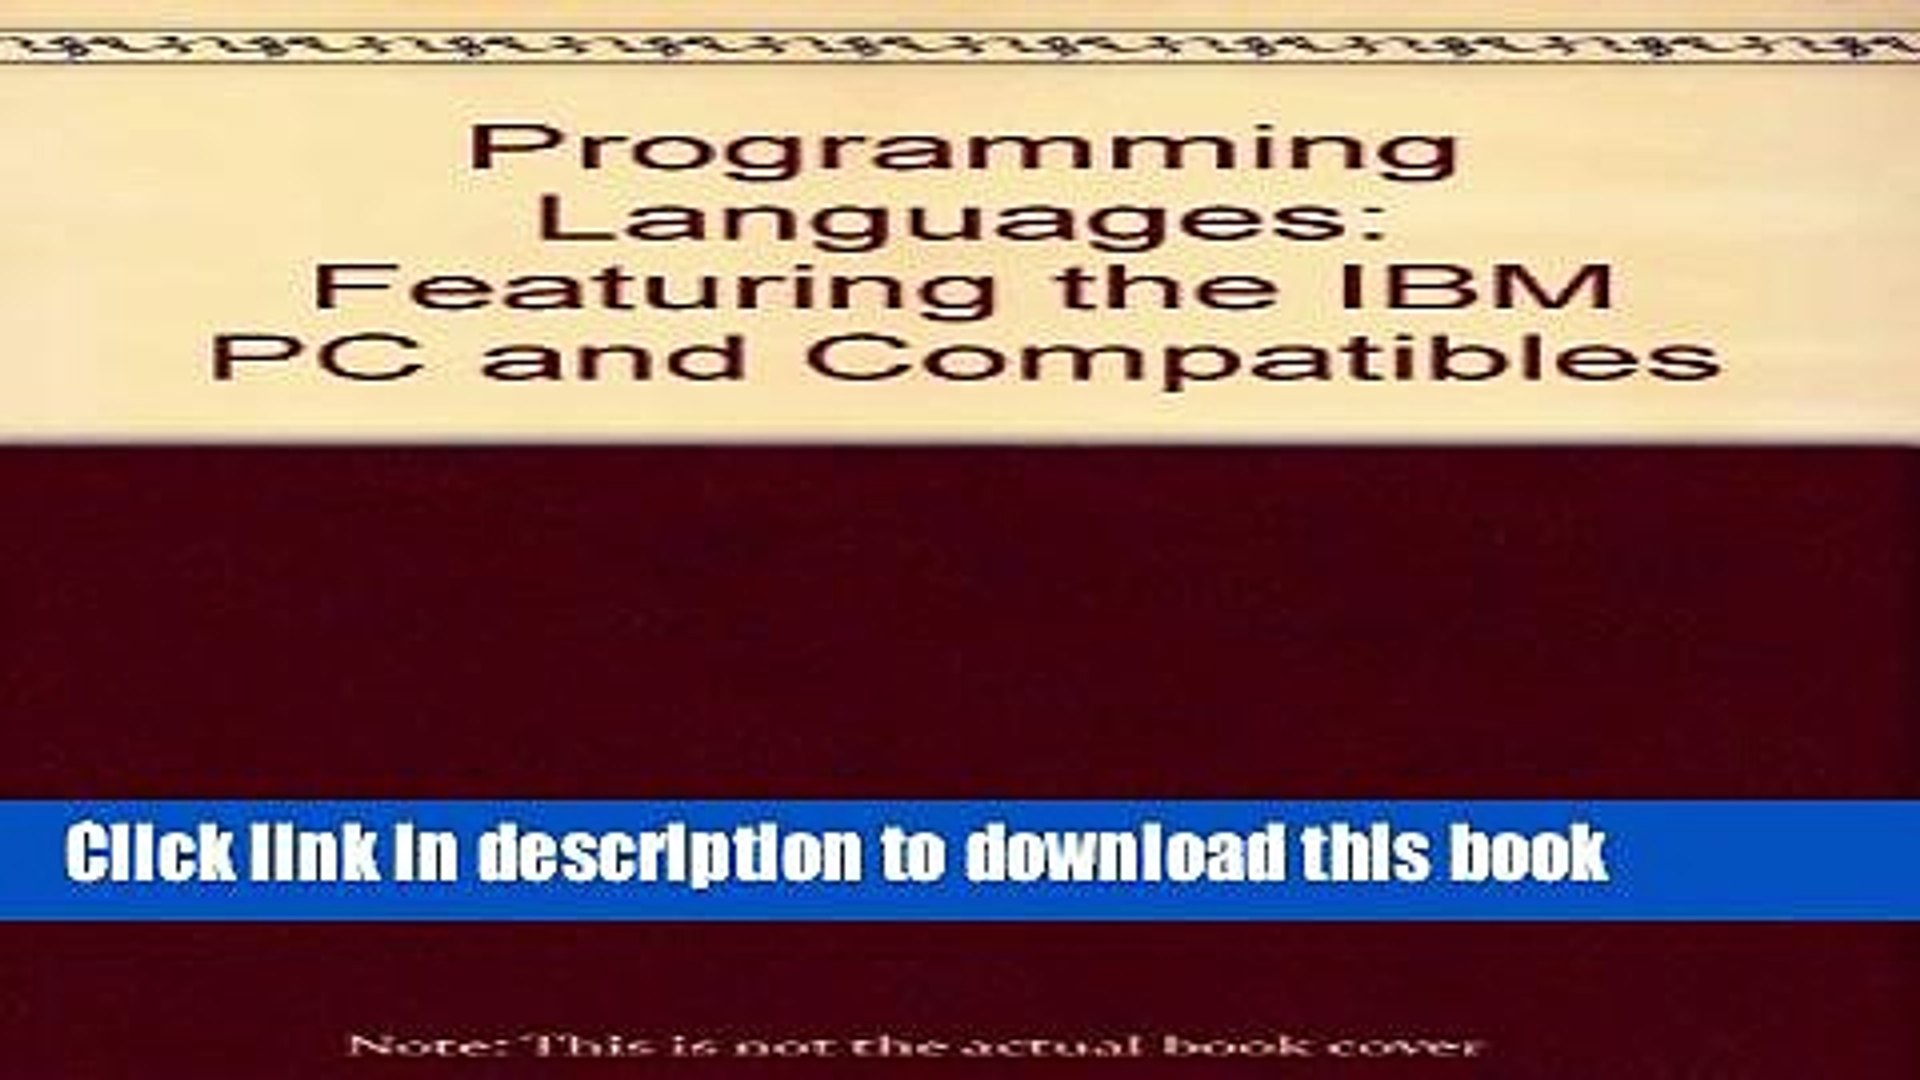 Download Programming Languages: Featuring the IBM PC and Compatibles Ebook  Free